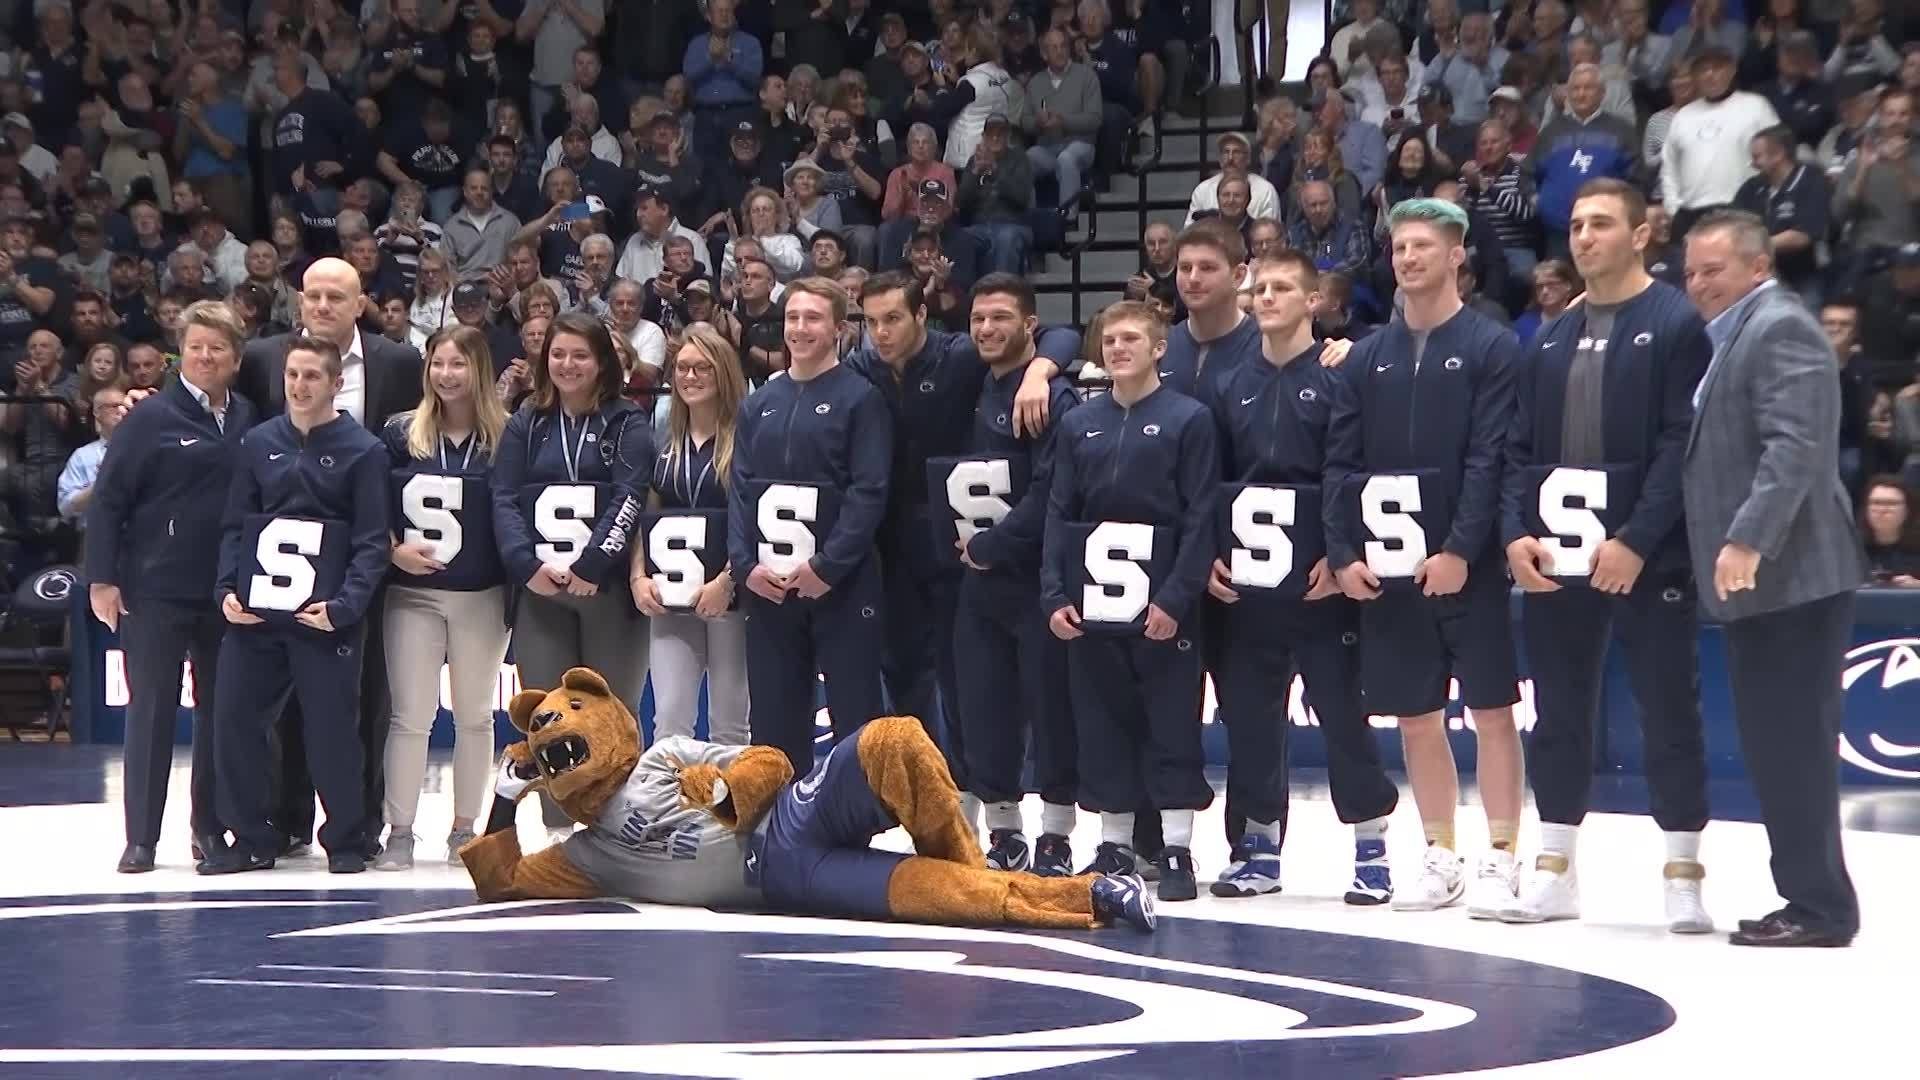 Extended_Highlights__Penn_State_Blows_Pa_0_20190224231110